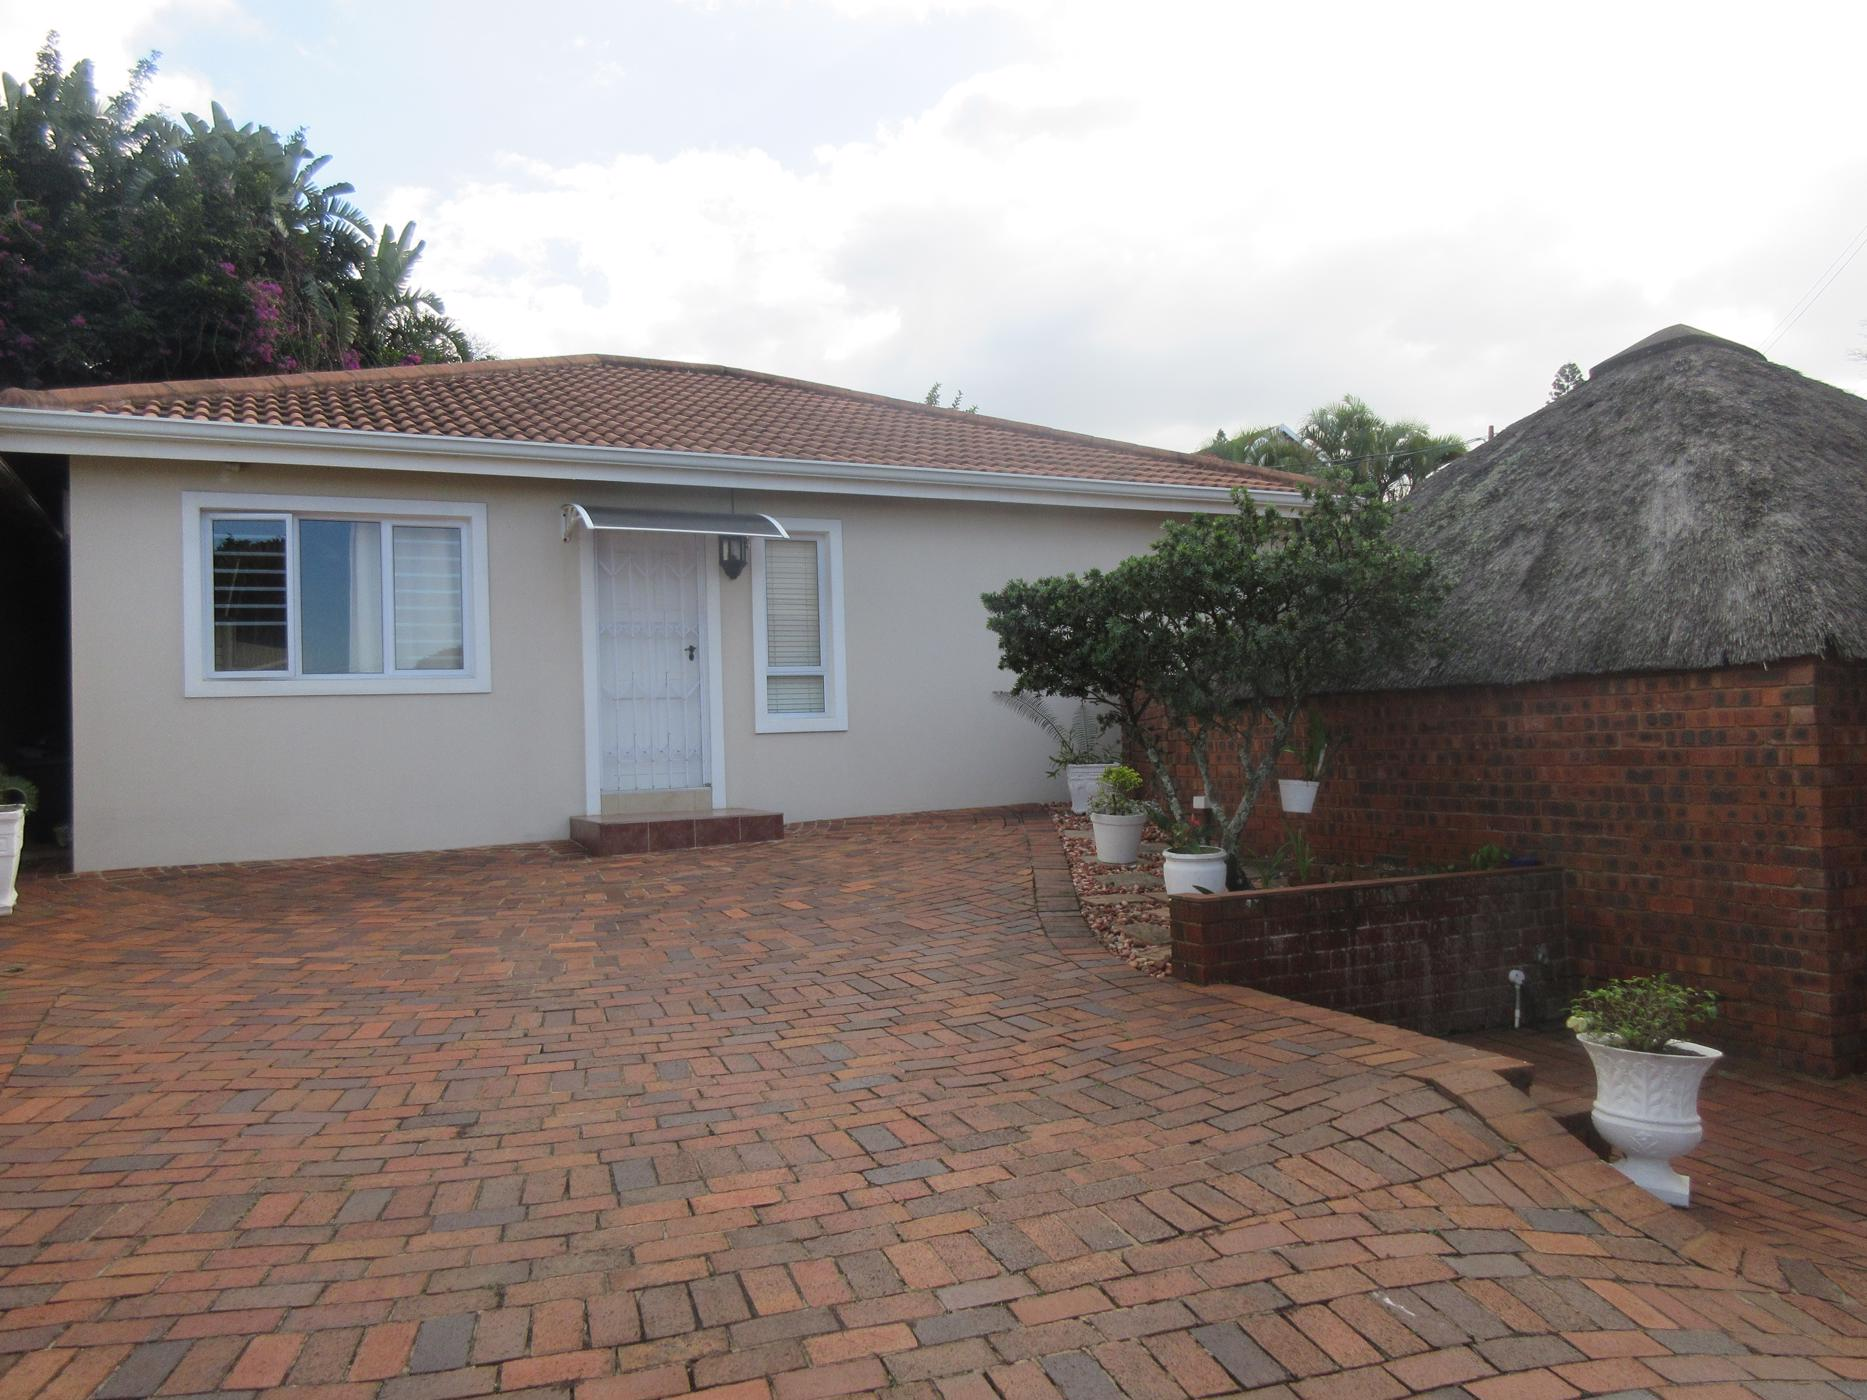 https://listing.pamgolding.co.za/images/properties/201908/794585/H/794585_H_1.jpg